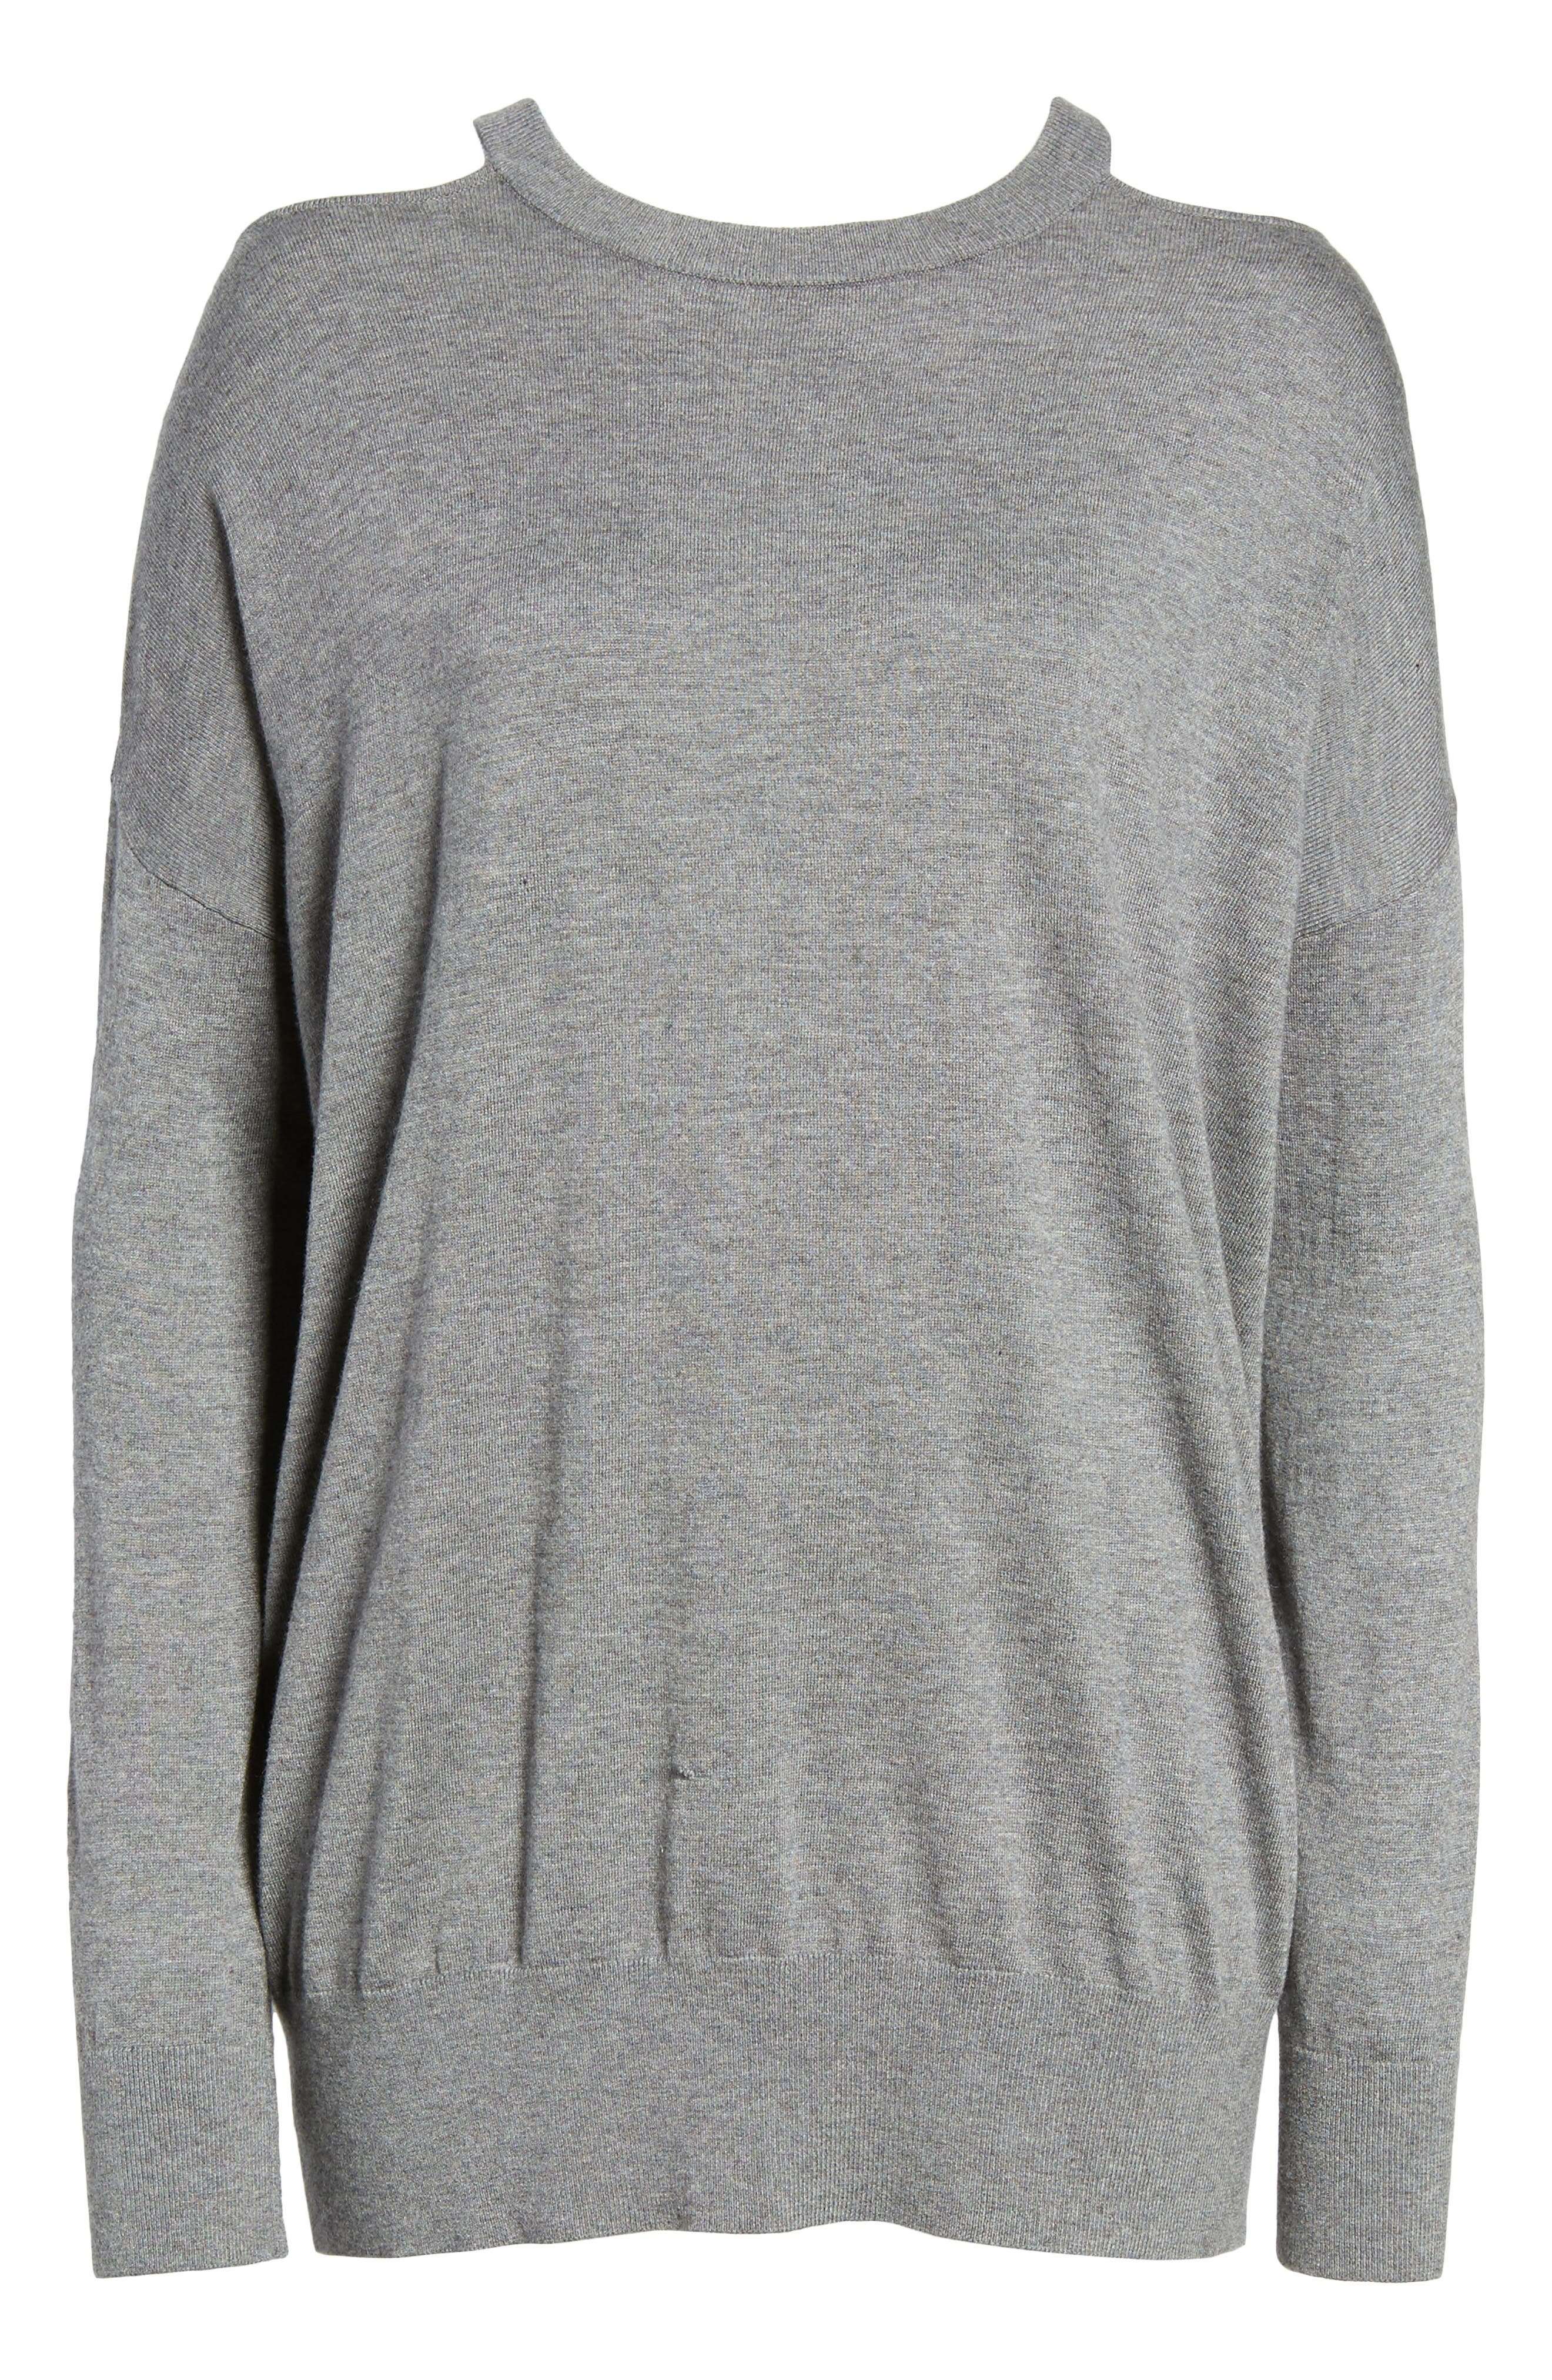 Canarise Cutout Sweater,                             Alternate thumbnail 6, color,                             039